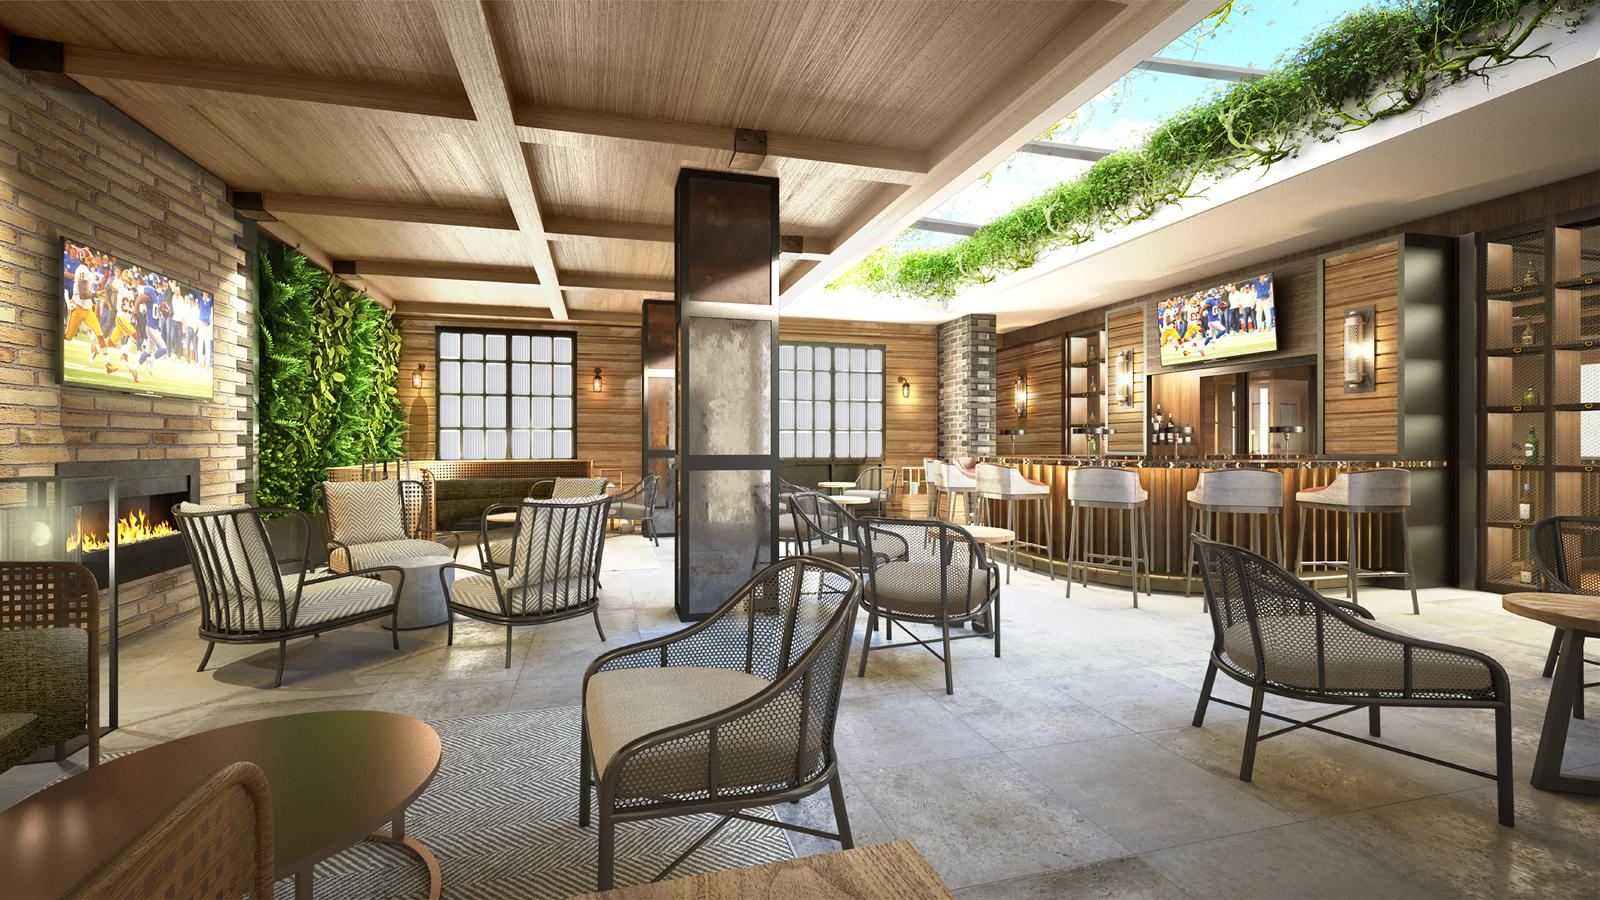 More Details On New Las Vegas Montecristo Cigar Bar